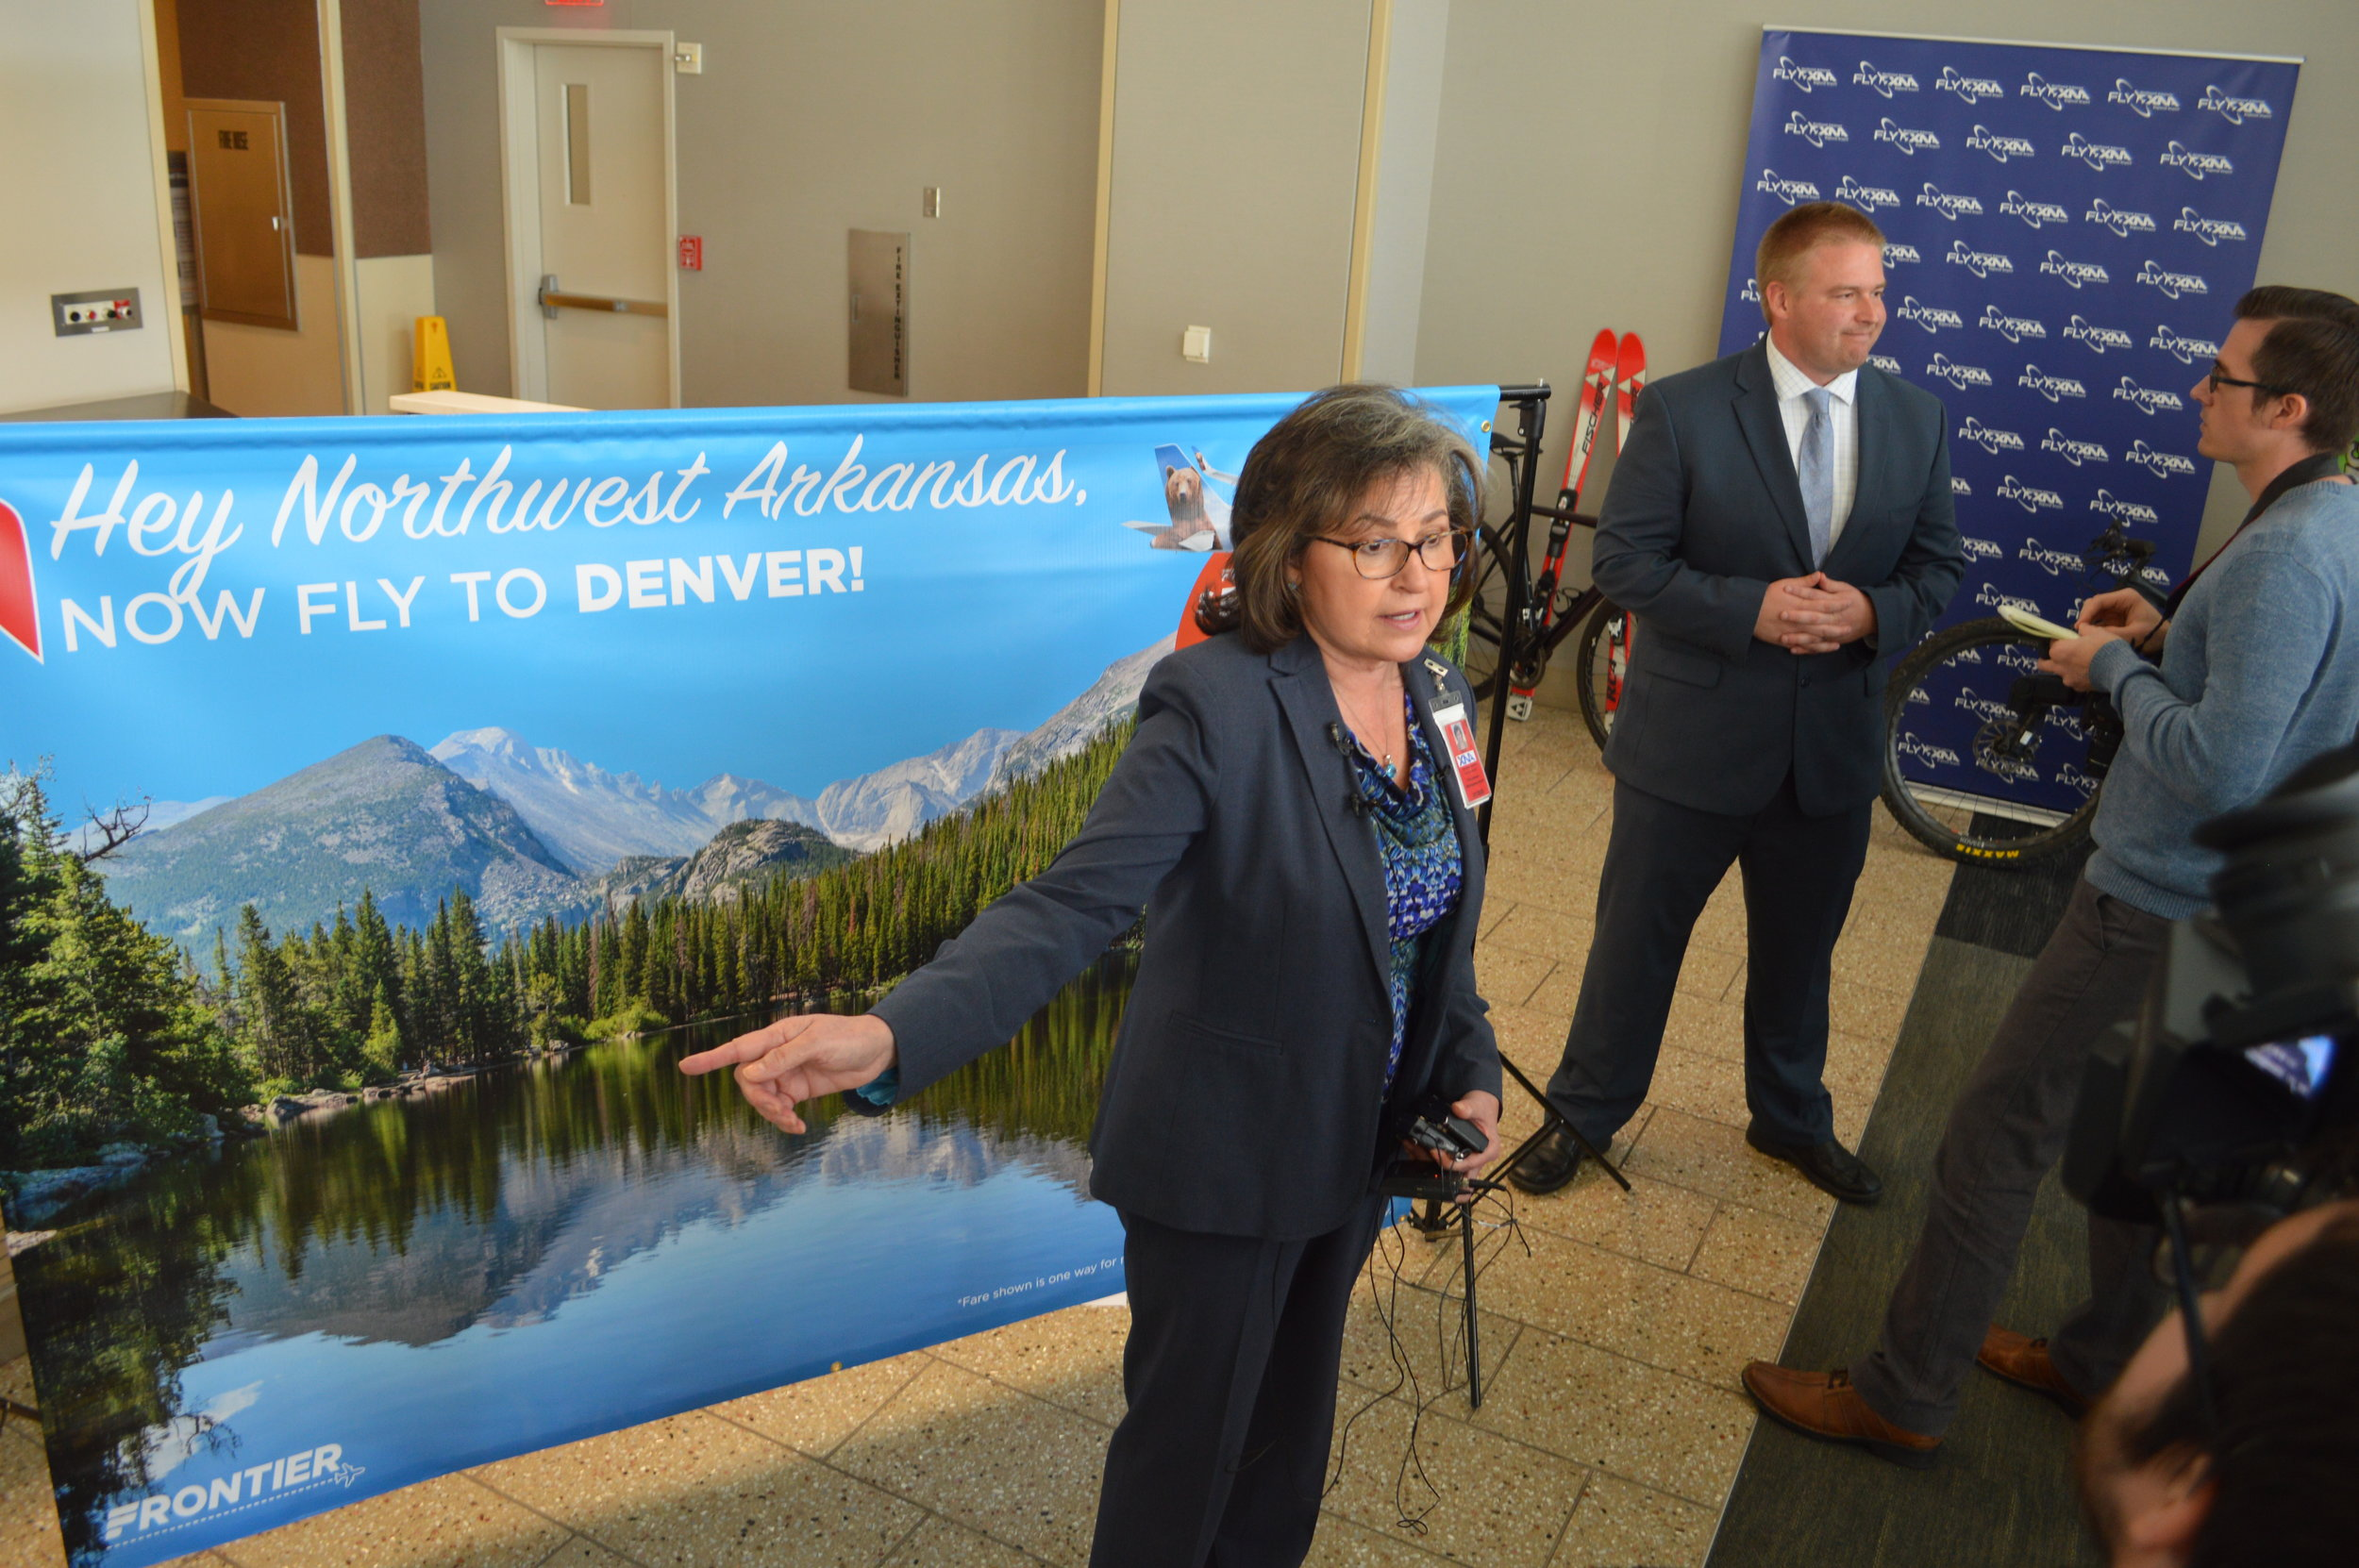 Kelly Johnson of the Northwest Arkansas Regional Airport and Jonathon Nield of Frontier Airlines answer reporters' question about the airline's start of flights from the airport to Denver. The first Frontier flight between the communities takes place June 27.